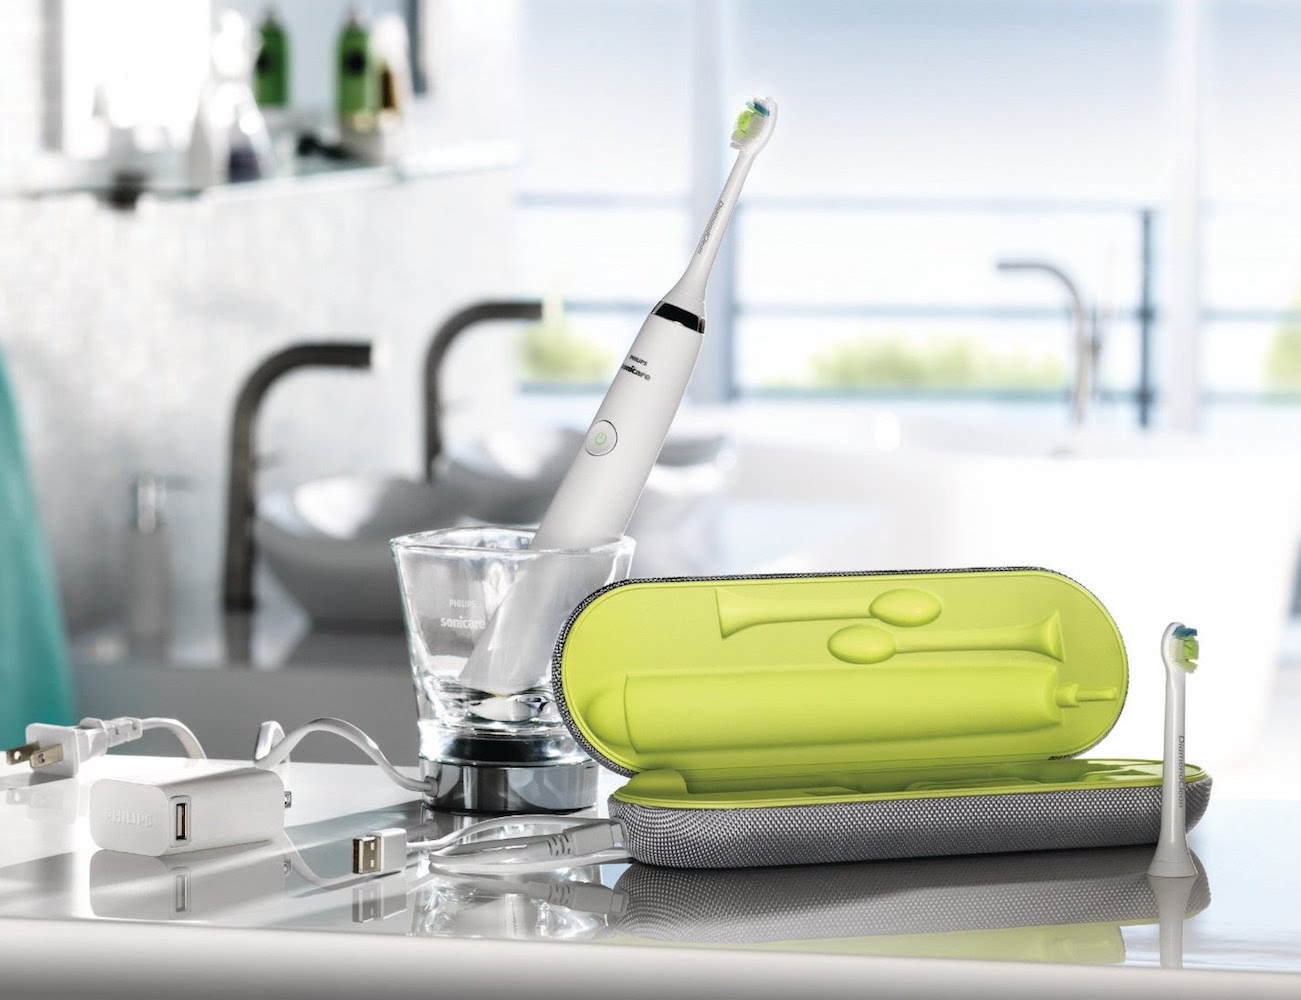 sonicare-diamondclean-electric-toothbrush-by-philips-07